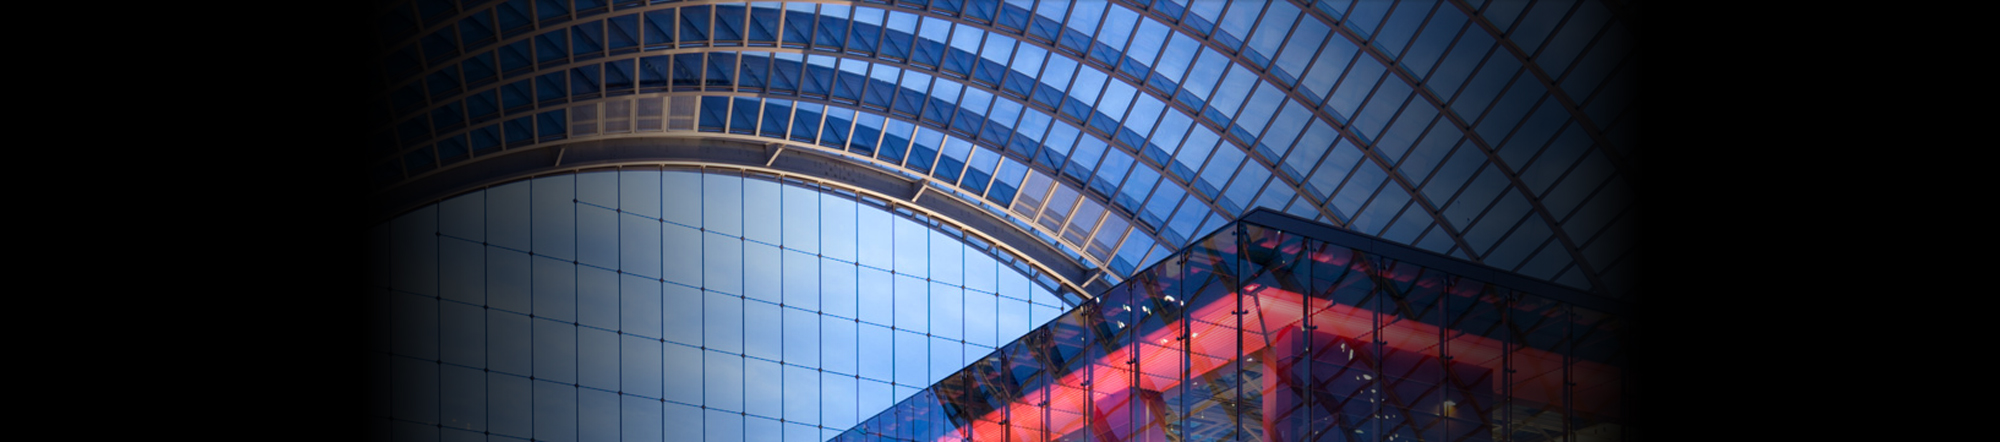 SageGlass electrochromic glass at the Kimmel Center in Philadelphia